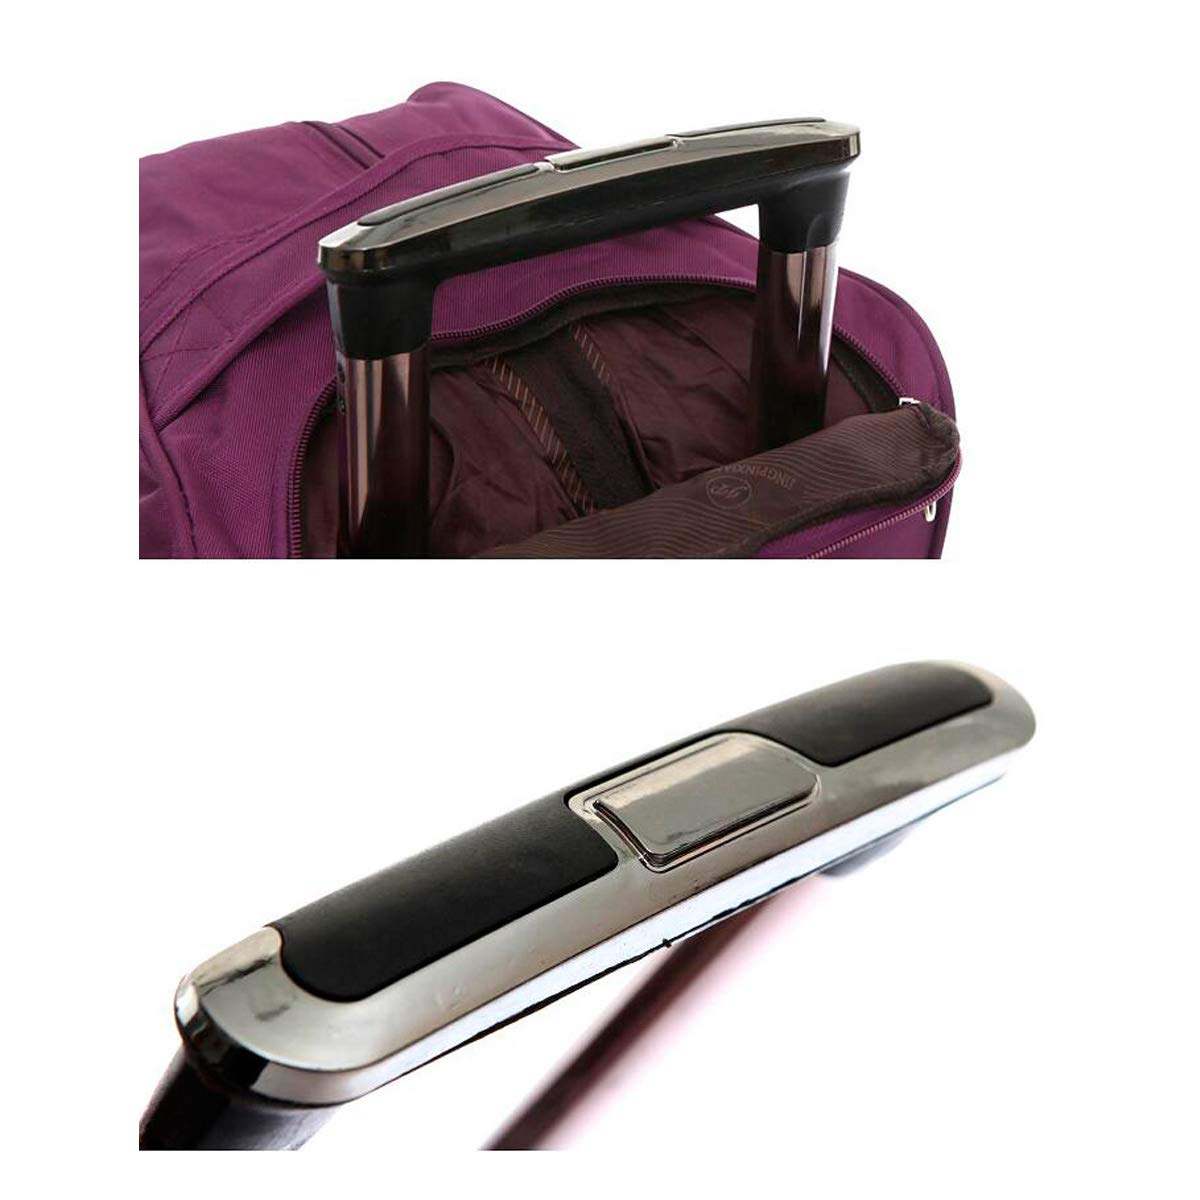 Travel Organizer Handbag Travel Case 20 Inches Latest Style Soft Bag Shengshihuizhong Trolley Case Color : Brown, Size : 24 Simple Style